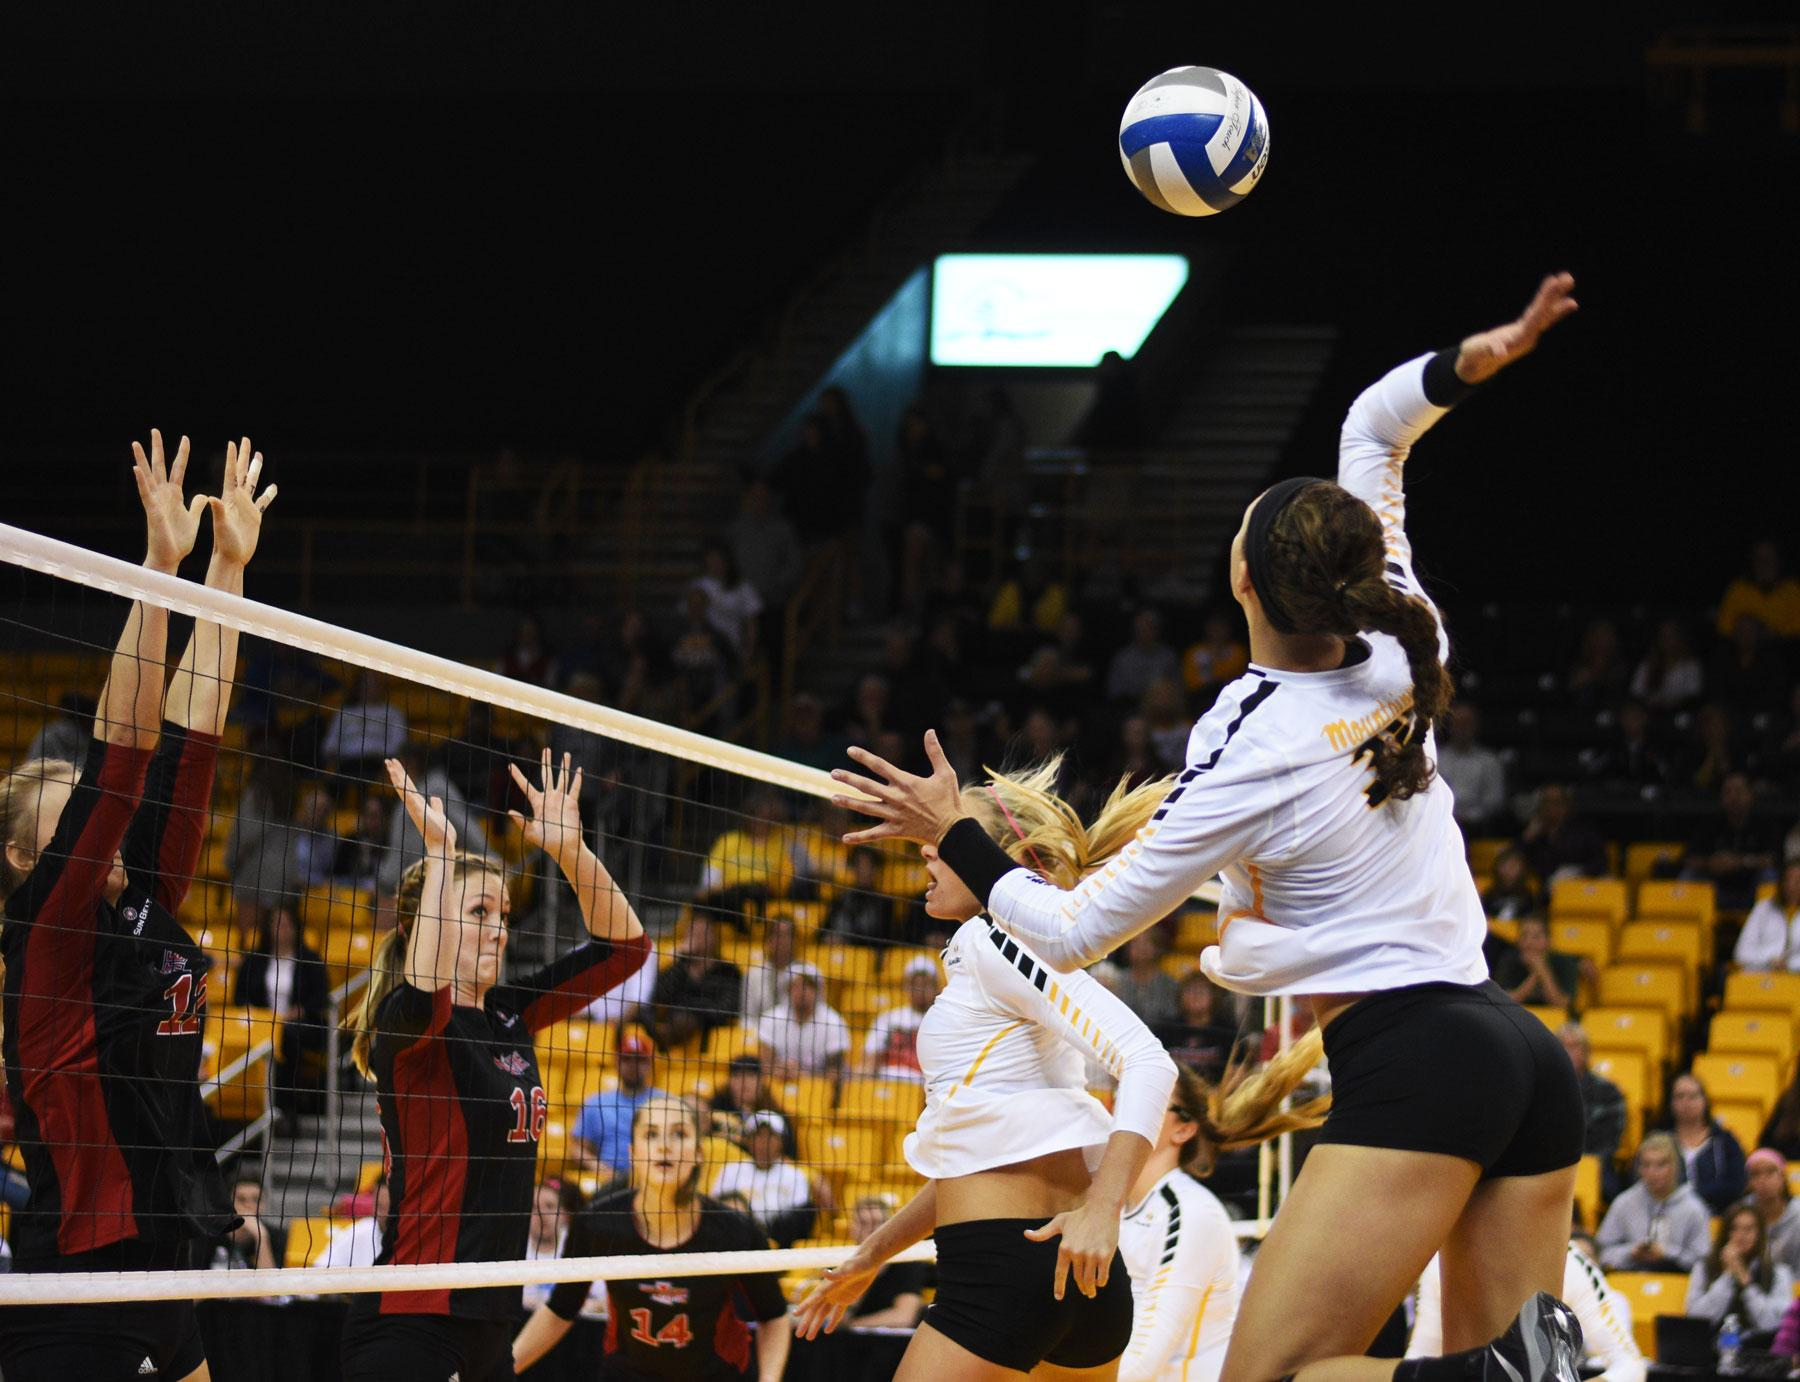 Rivalry abounds as App volleyball falls